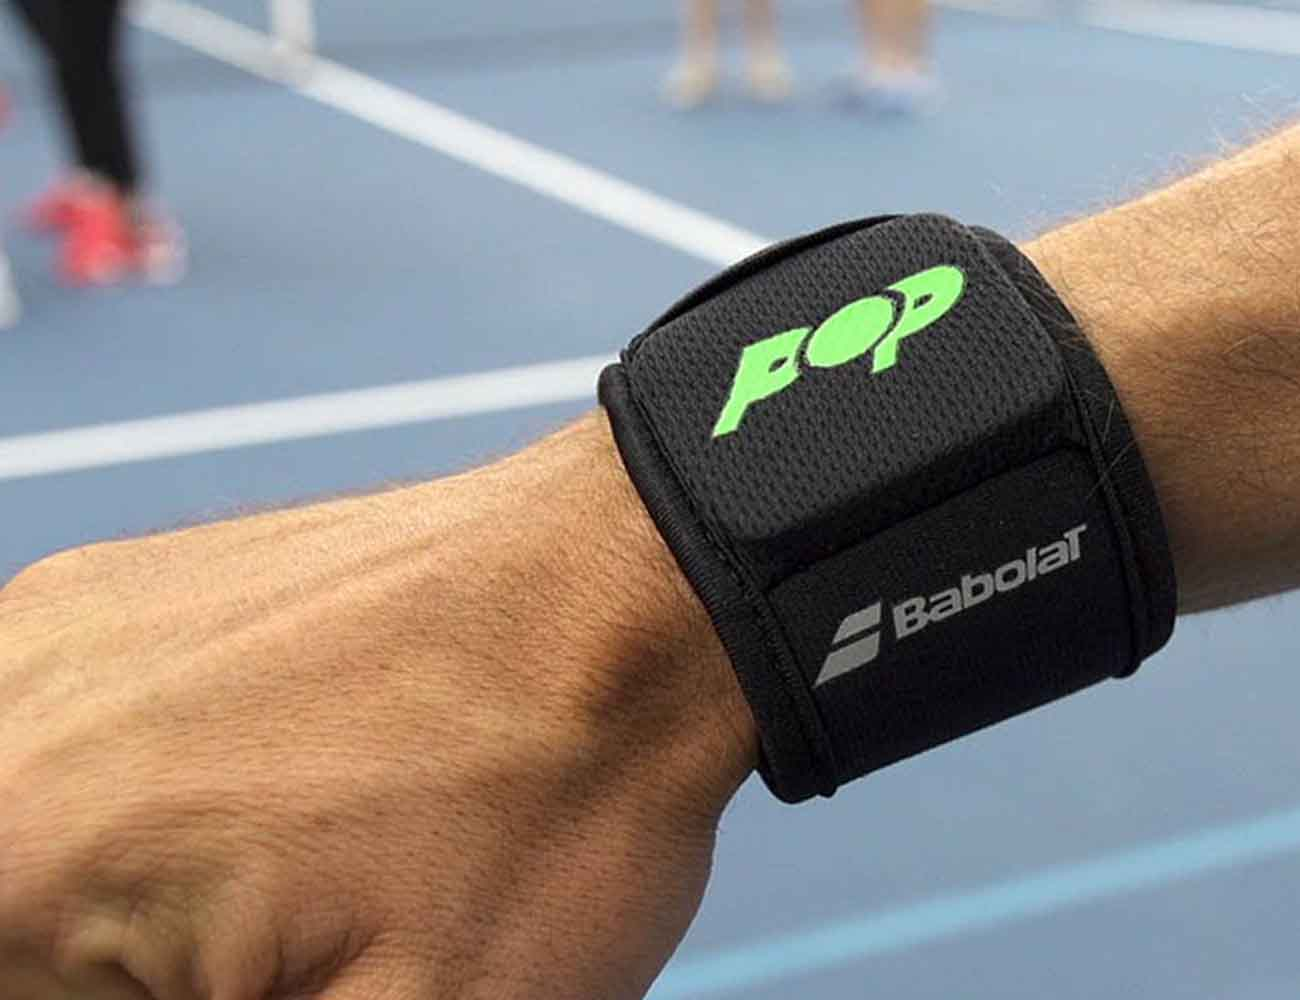 POP Tennis Sensor by Babolat